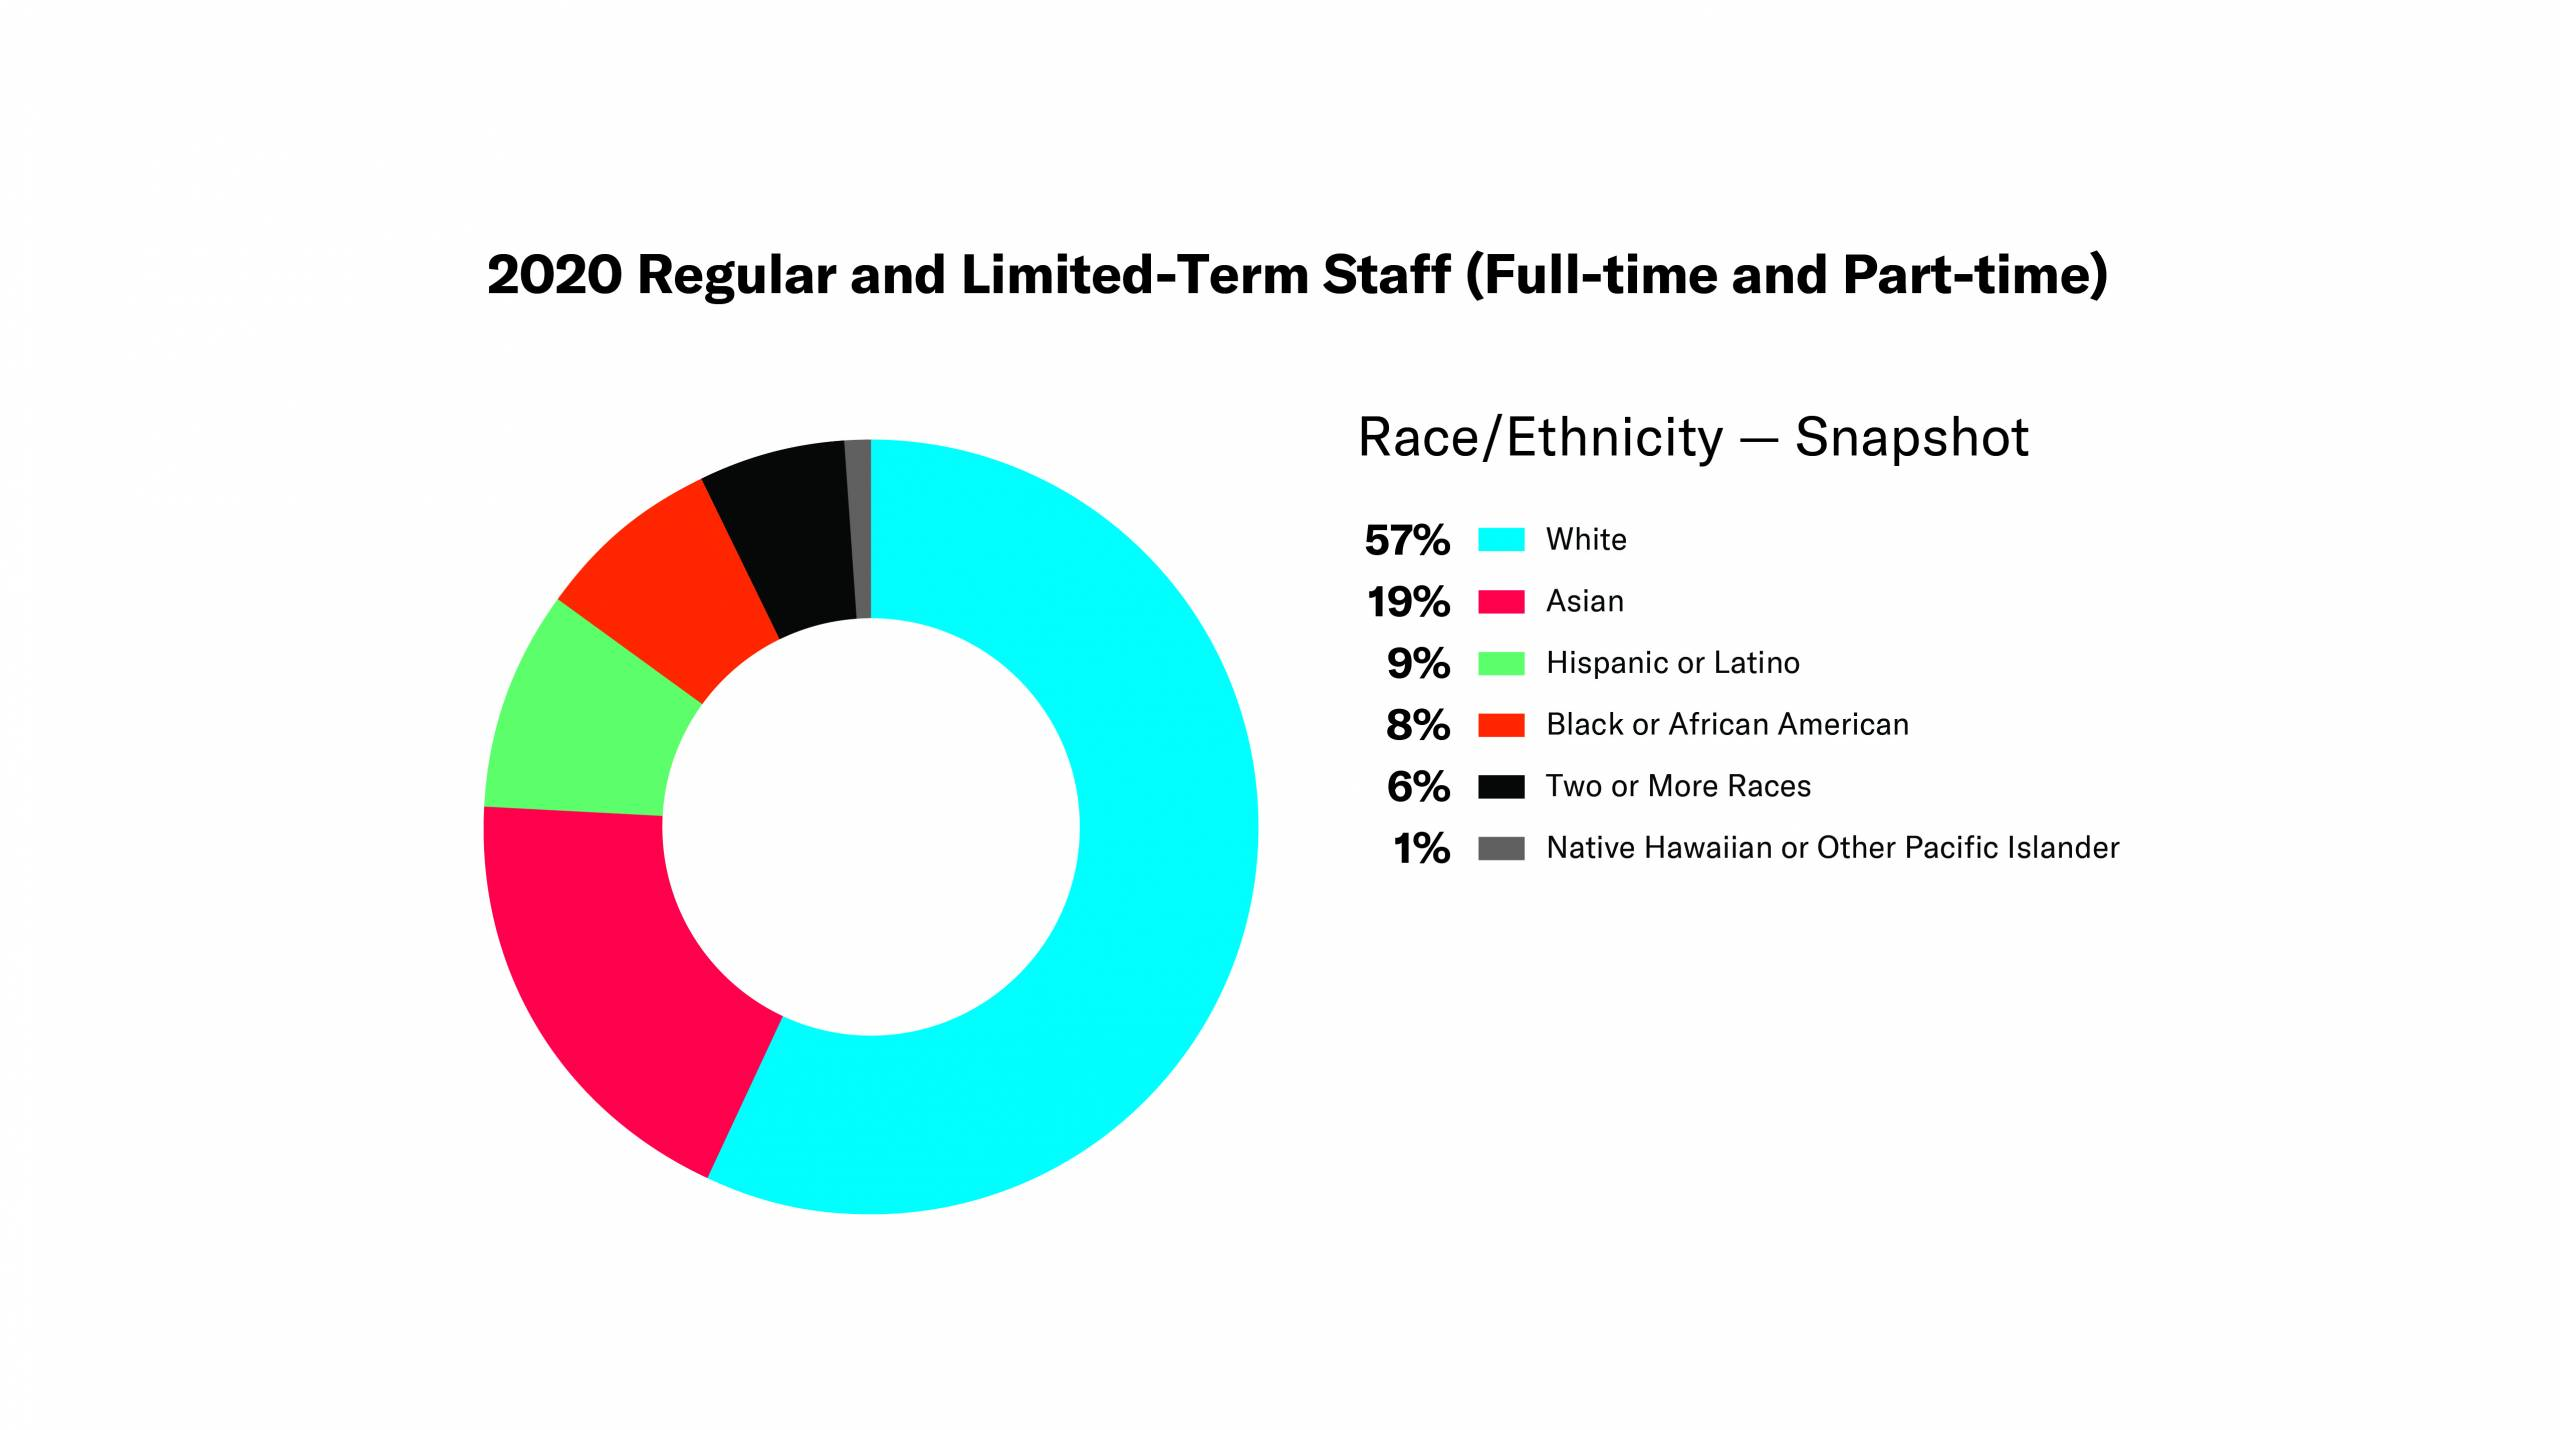 Donut chart - 2020 Regular and Limited-Term Staff (Full-time and Part-time) - Race/Ethnicity Snapshot